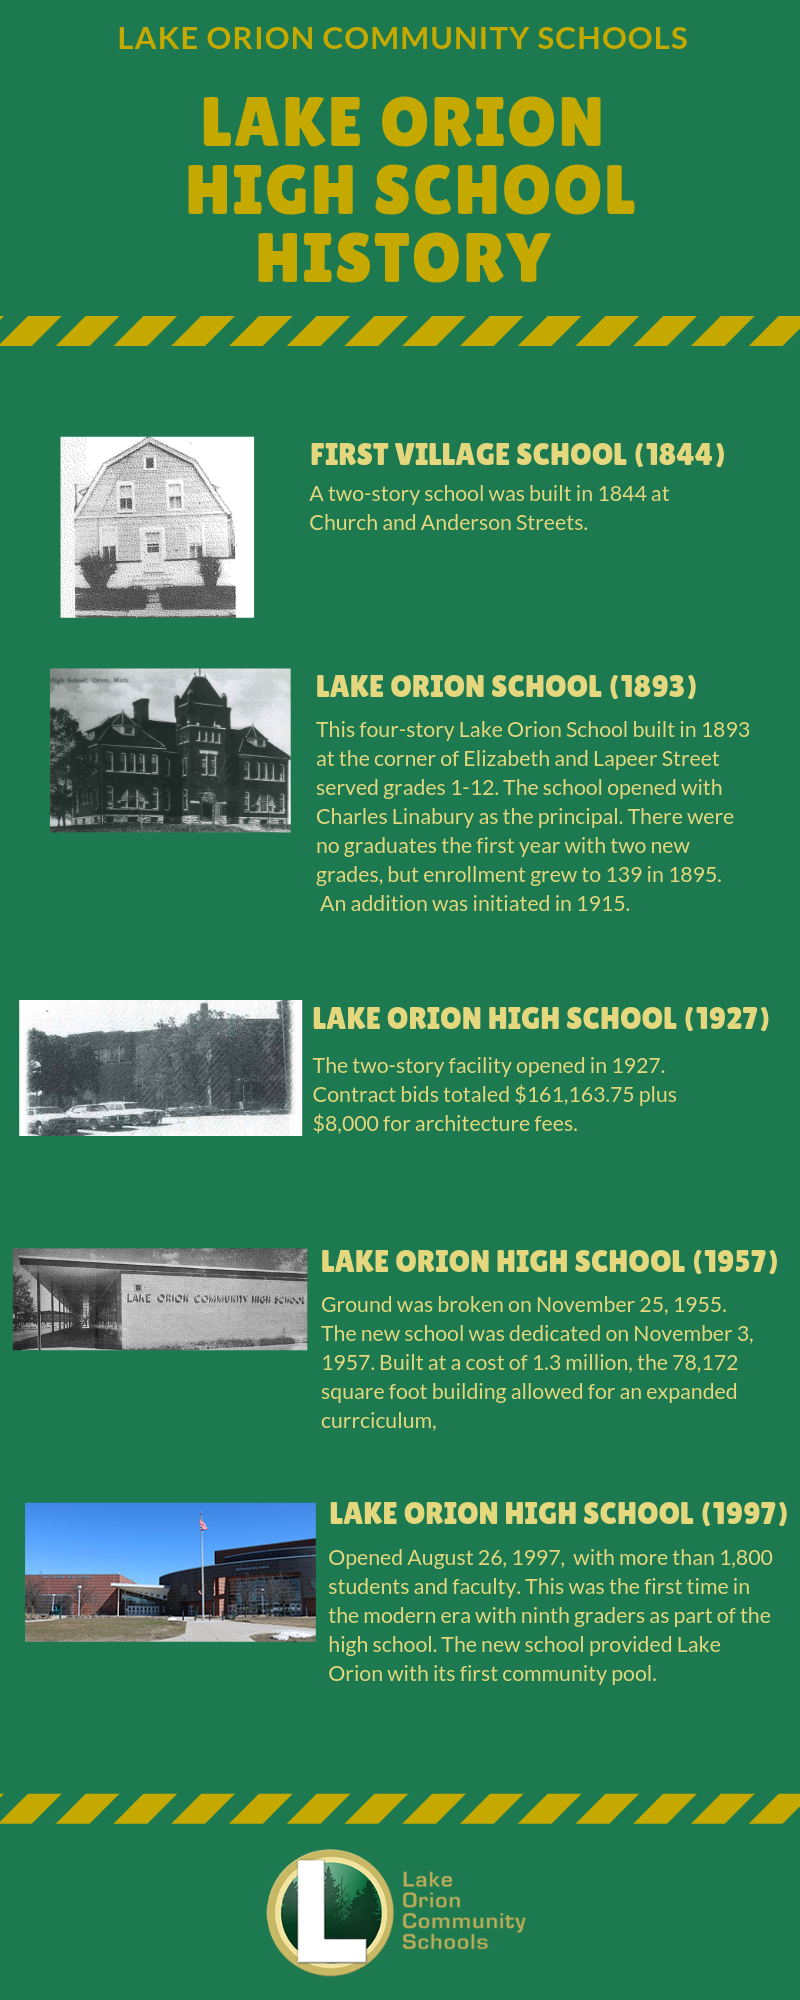 Lake Orion High School History